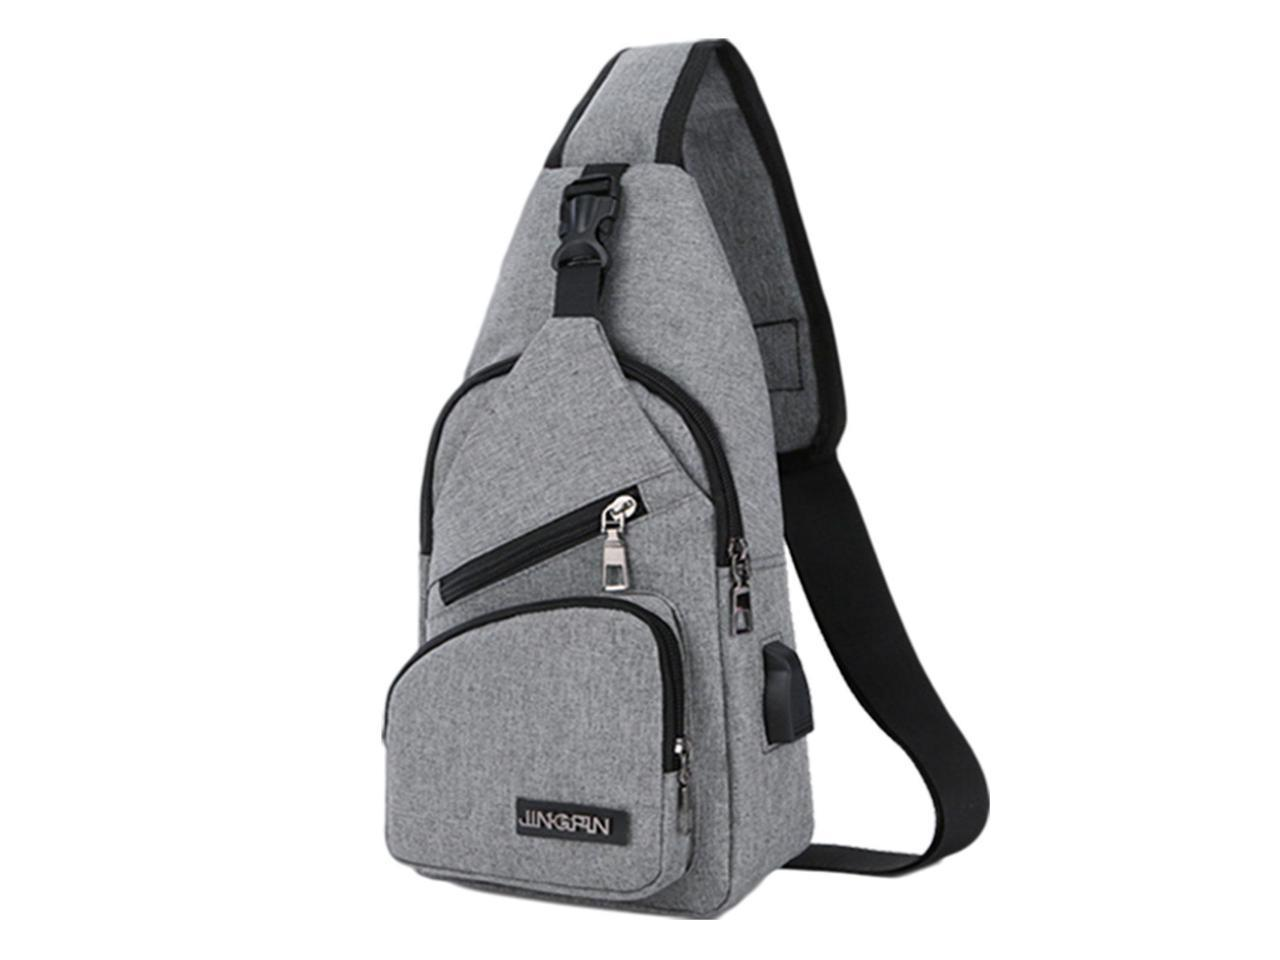 Mens Shoulder Bag Sling Chest Pack Sports Crossbody School With USB Charging NEW